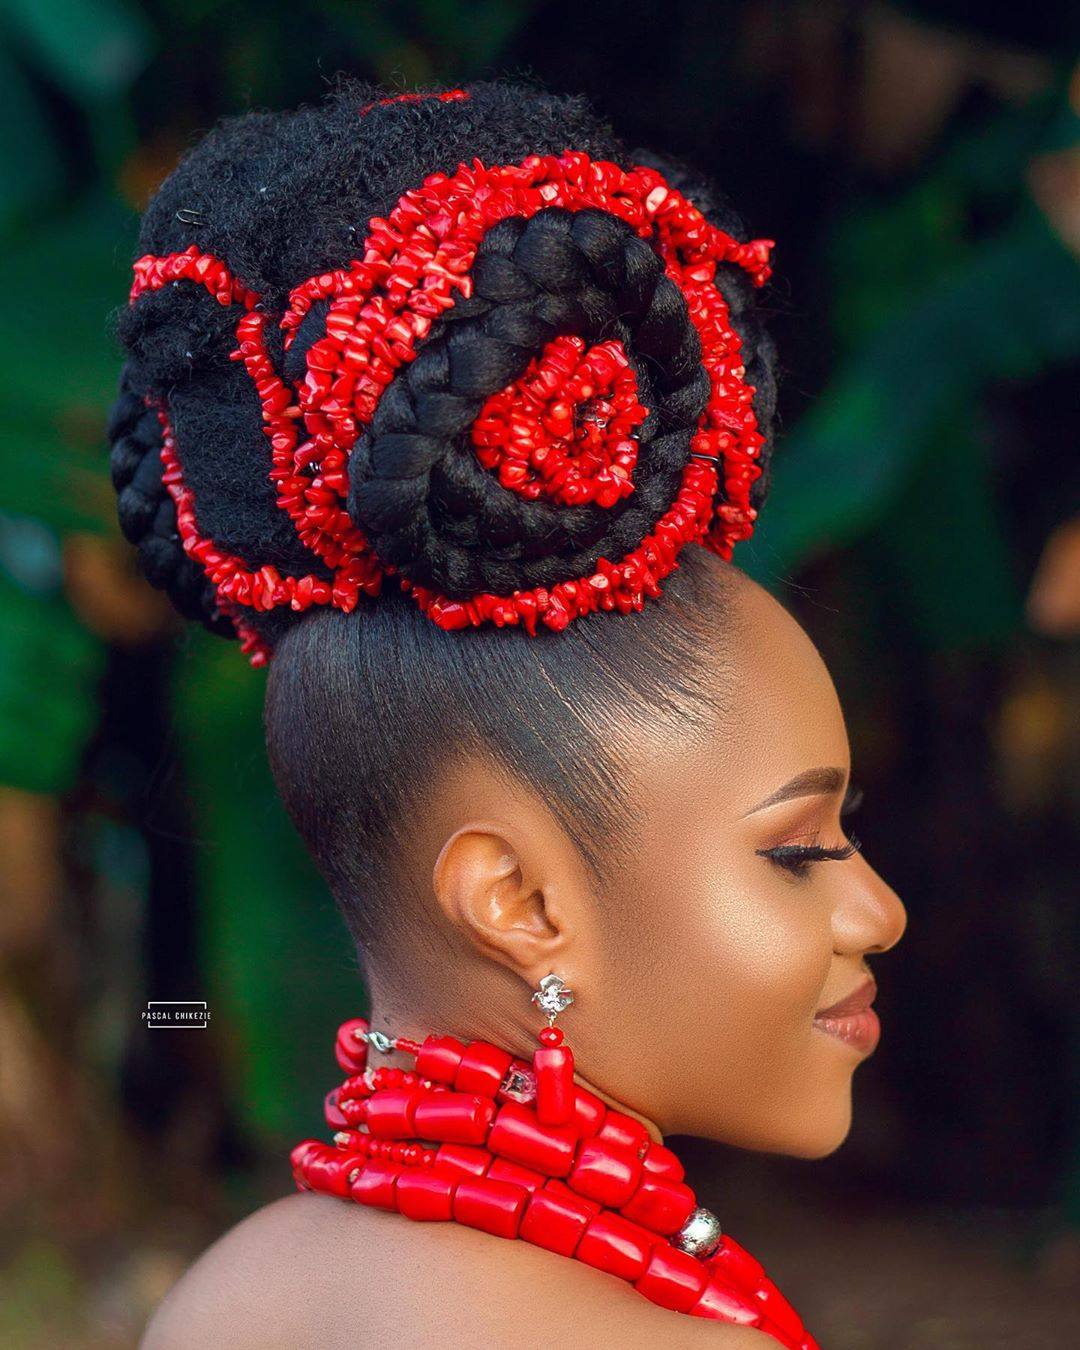 Coral Beads + a Big Bun Hairstyle is Today's Bridal Beauty Look